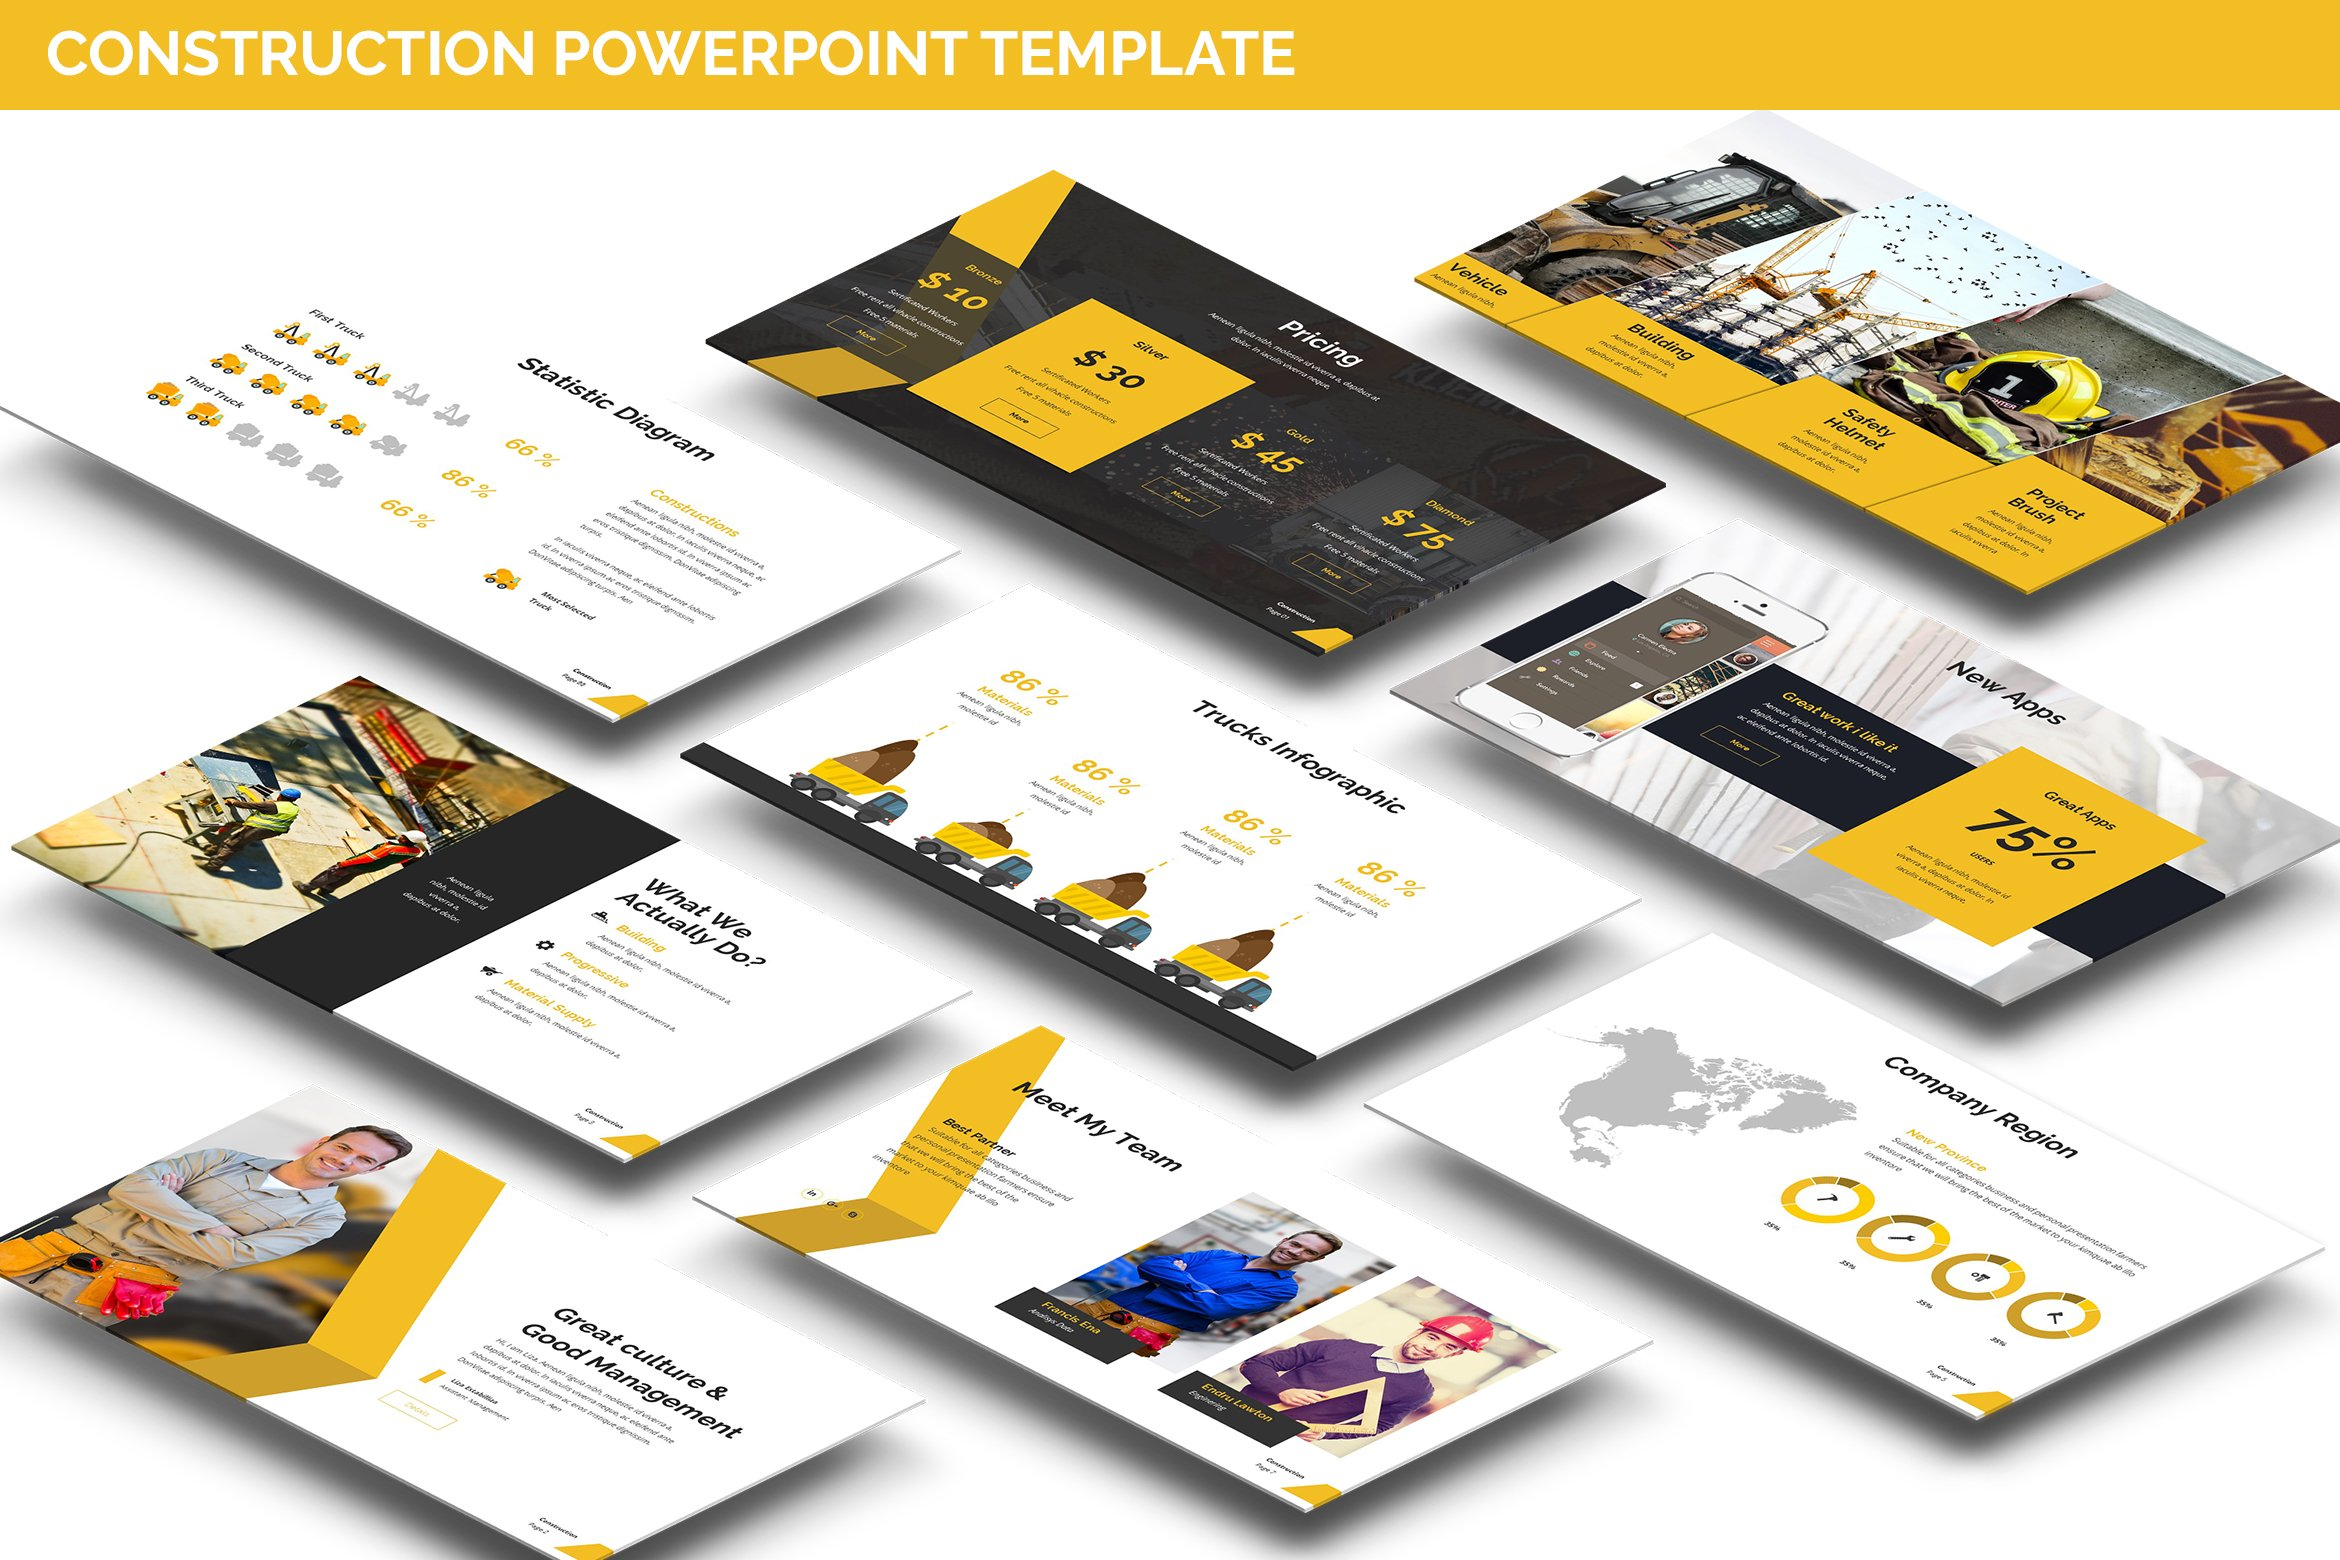 Construction powerpoint presentation presentation templates construction powerpoint presentation presentation templates creative market alramifo Images